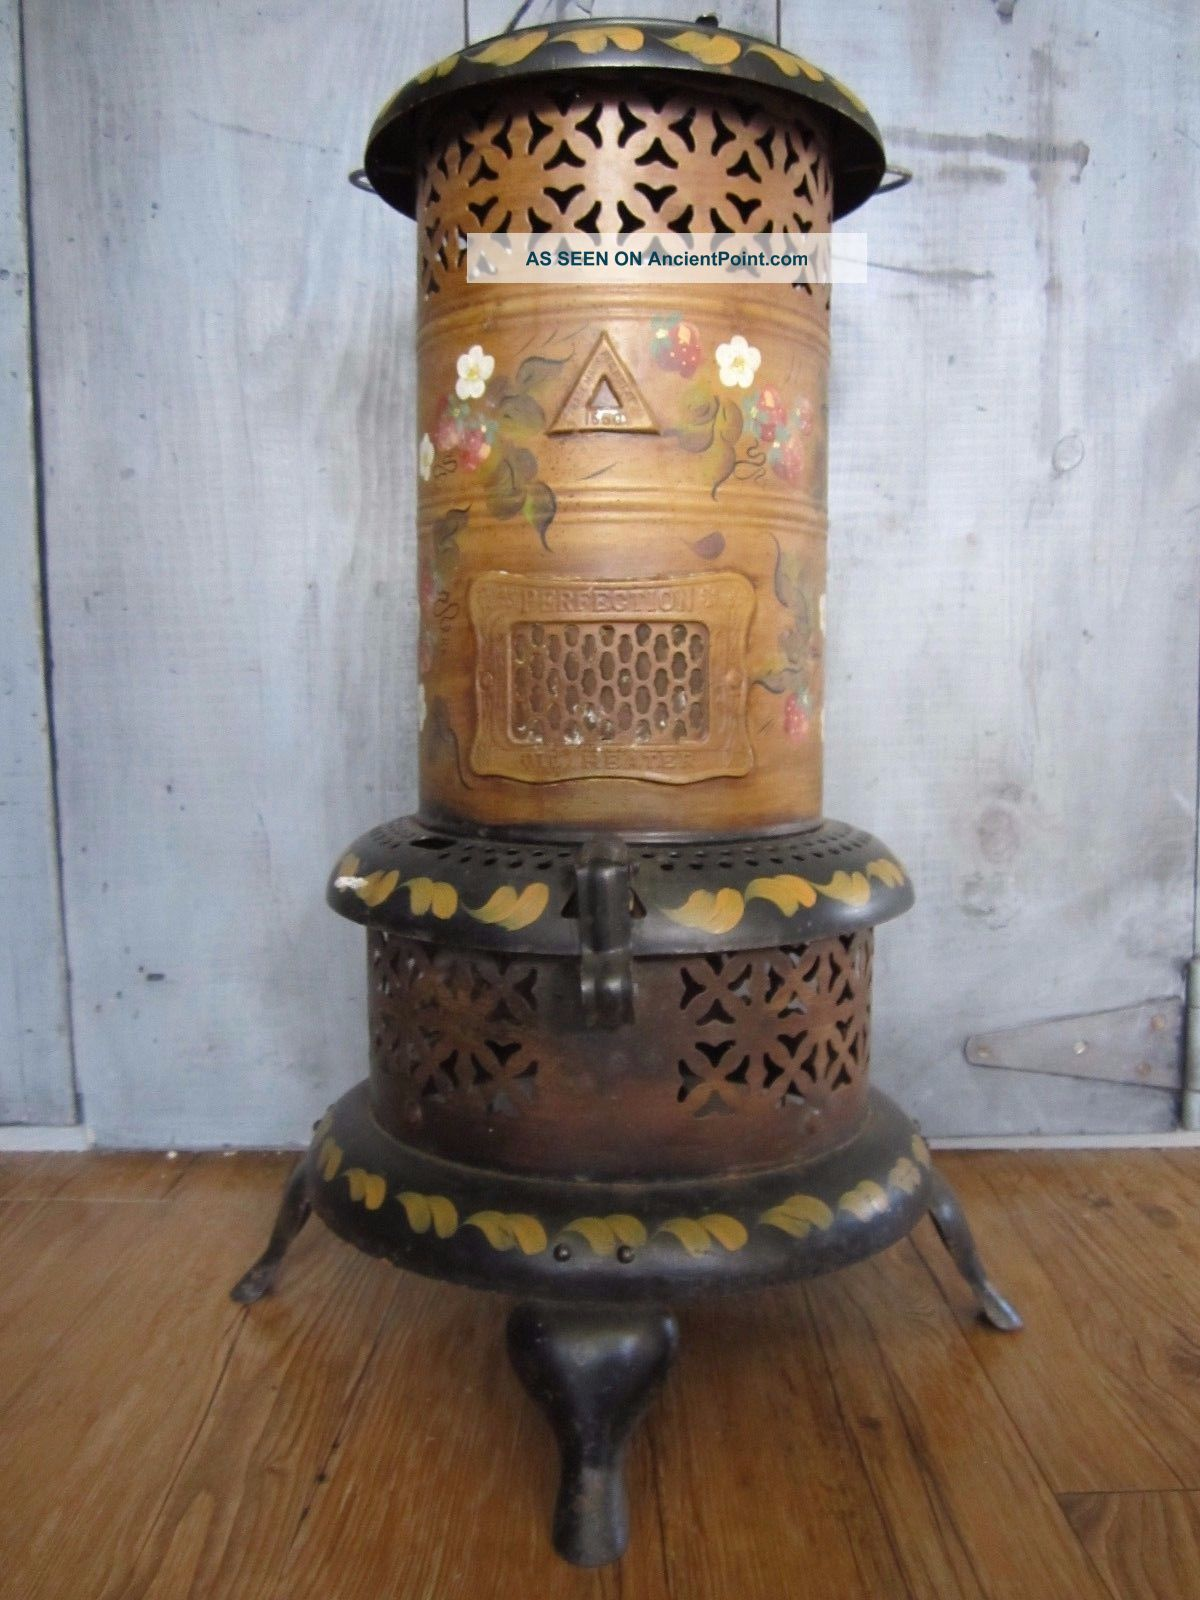 Vintage Perfection 1550 Smokeless Oil Kerosene Heater Hand Painted Made In Usa Stoves photo